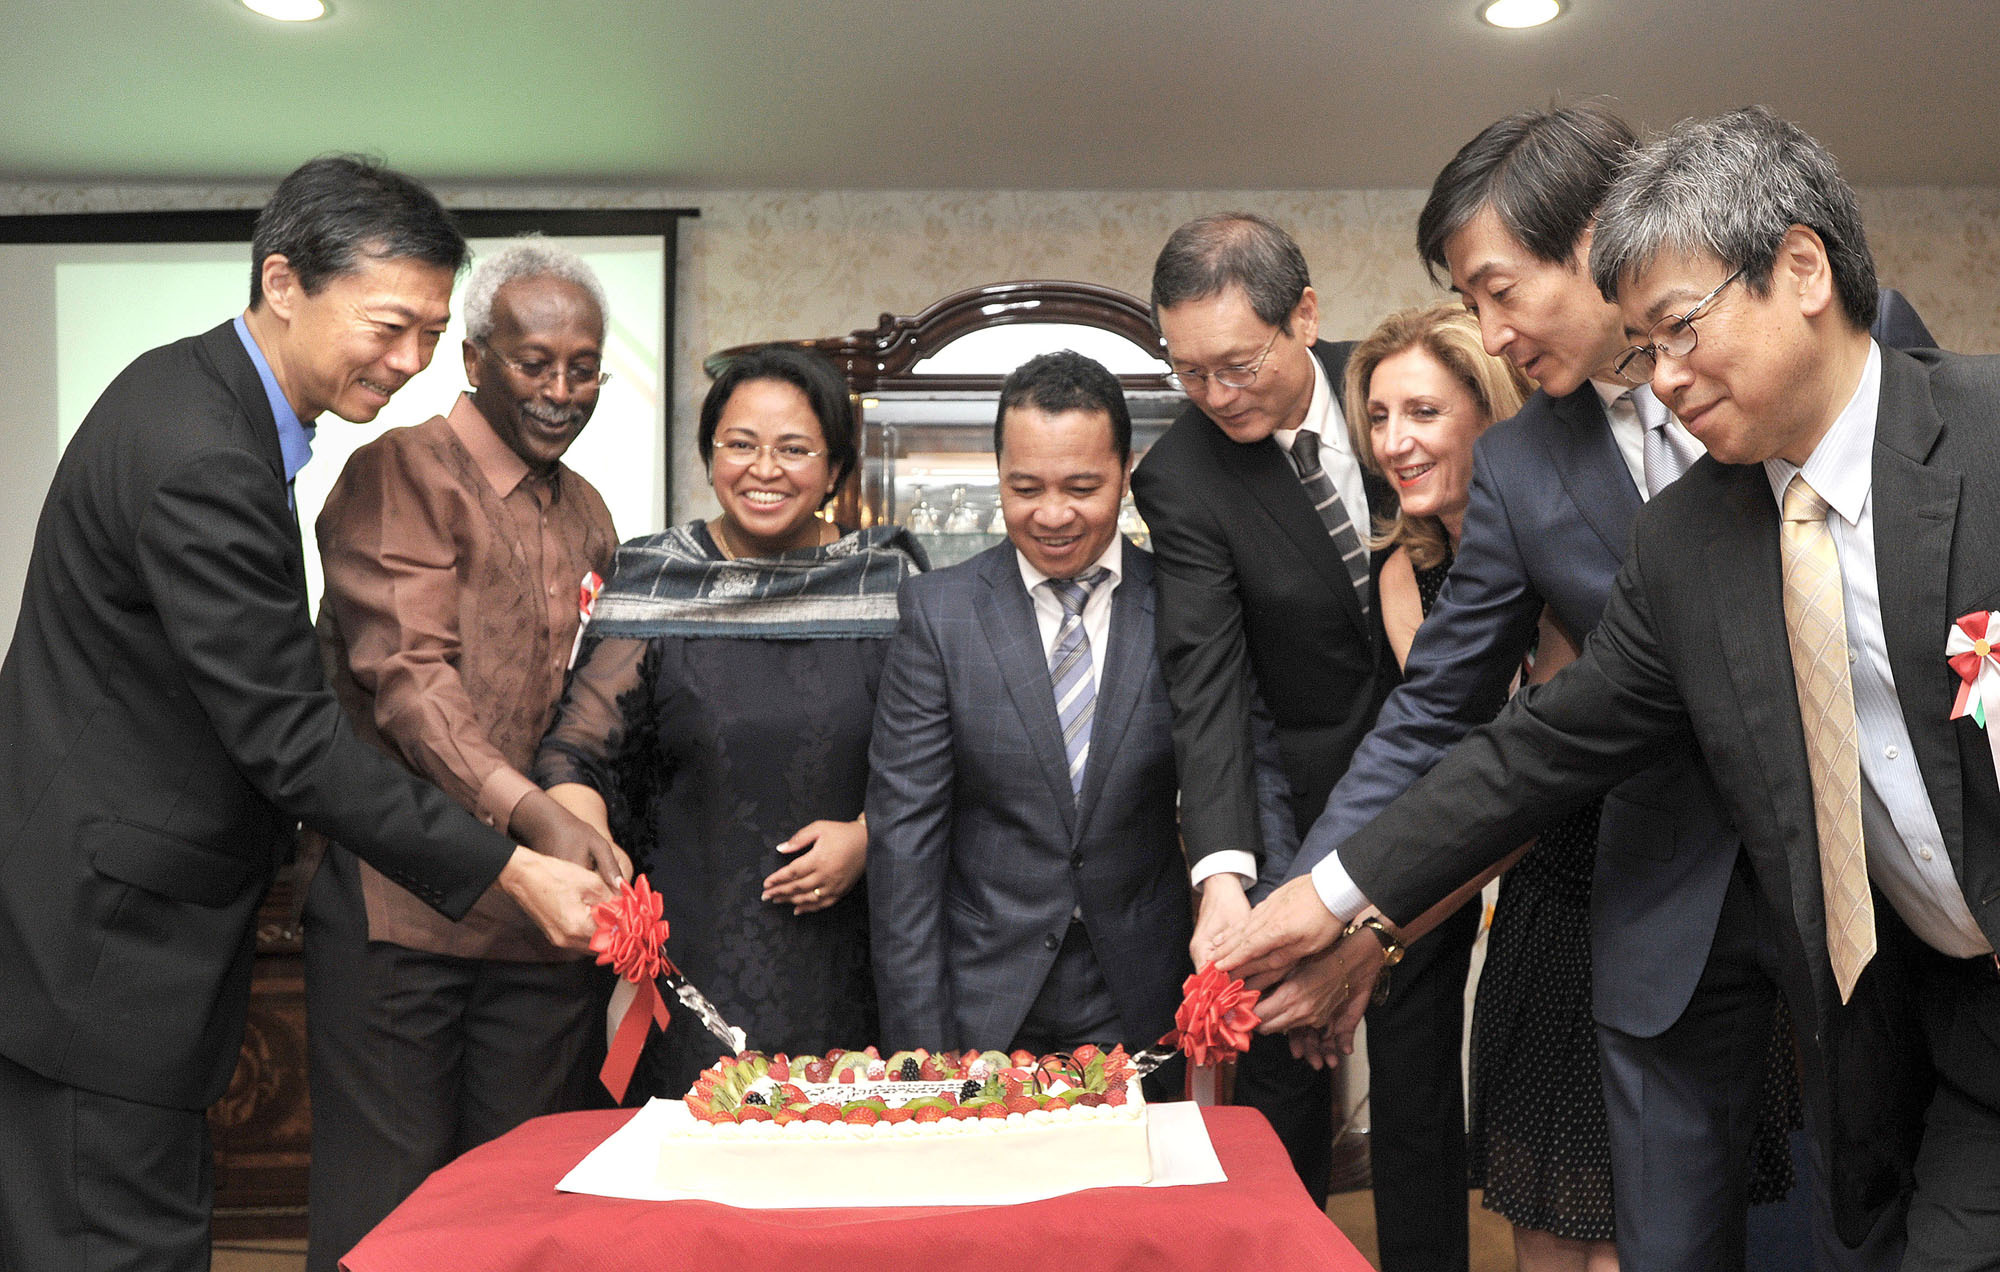 Madagascar Charge d' Affaires a.i. Rosette Rasoamanarivo (third from left) and her spouse Michael Rajoharimanana (fourth from left) are joined by, from left, Ministry of Foreign Affairs Director-General for African Affairs and Ambassador Norio Maruyama; Djibouti Ambassador Ahmed Araita Ali; Ministry of Foreign Affairs TICAD Ambassador Junzo Fujita; General Delegate of the Government of Quebec to Tokyo Claire Deronzier; Japanese Ambassador to Madagascar Ichiro Ogasawara; and JICA Africa Department Director-General Hideo Eguchi, in a cake-cutting ceremony during a reception to celebrate the country's 56th Independence Day at the embassy on June 26. | YOSHIAKI MIURA